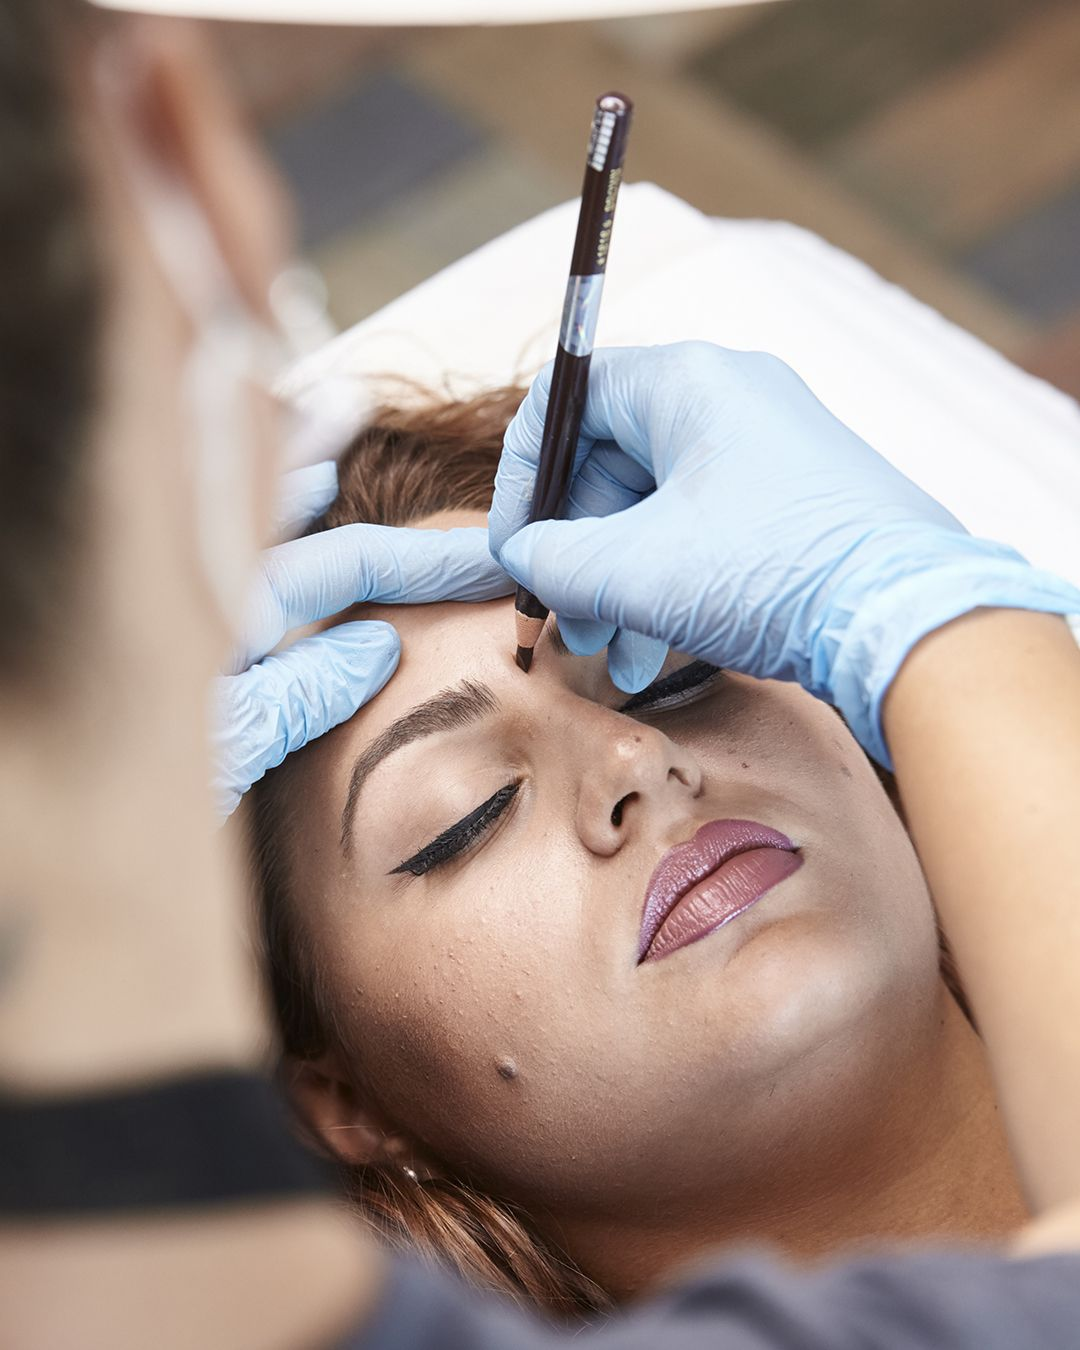 Your dream job? Giving people strong brows. a